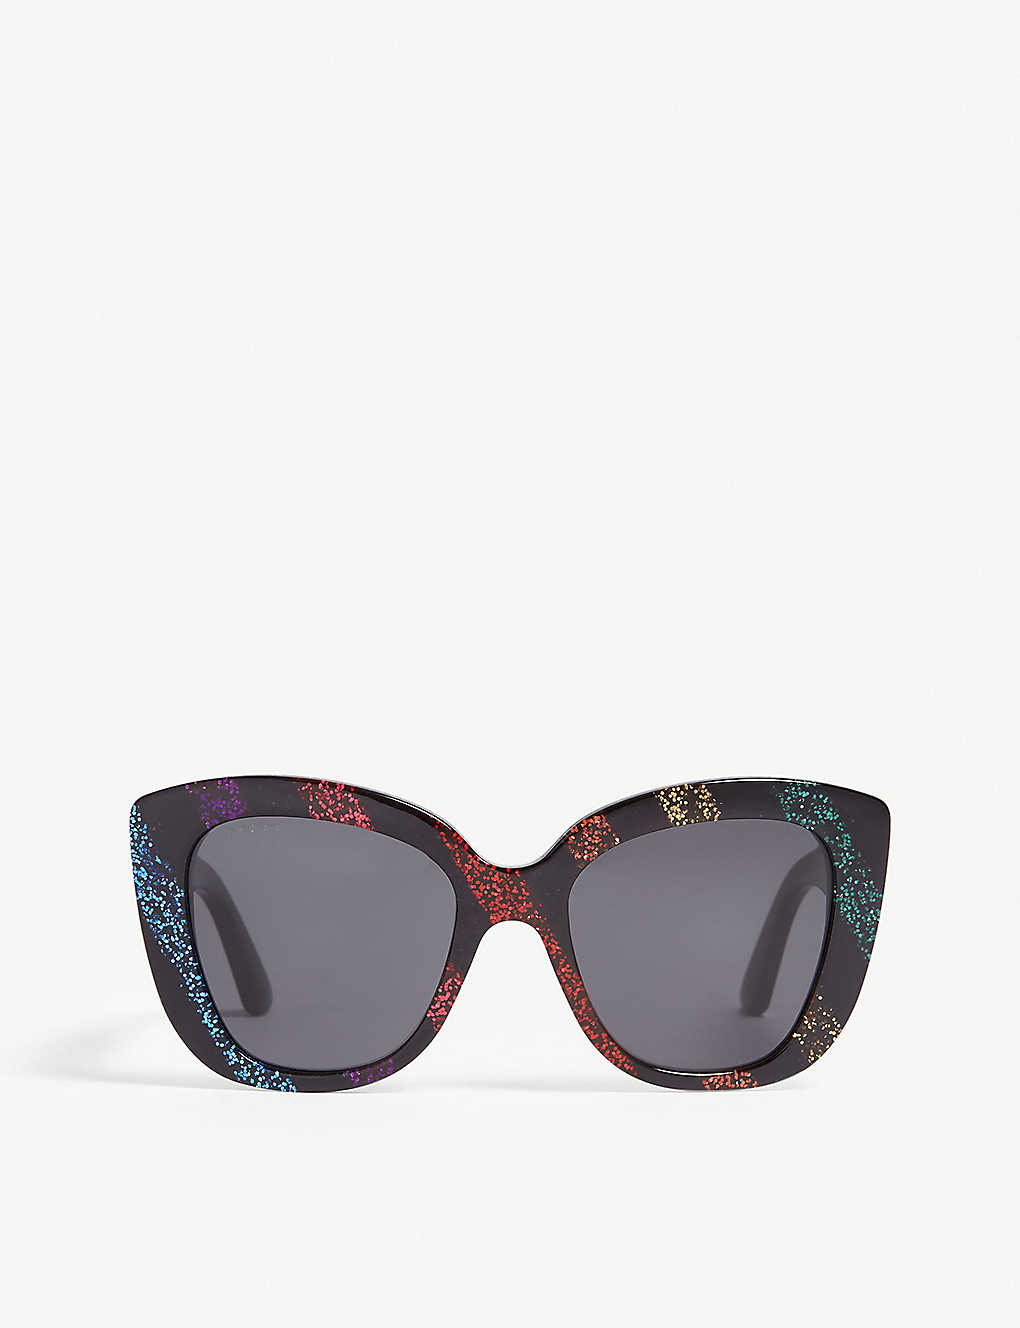 eb7be0b71865b GUCCI - GG0327S cat-eye-frame sunglasses